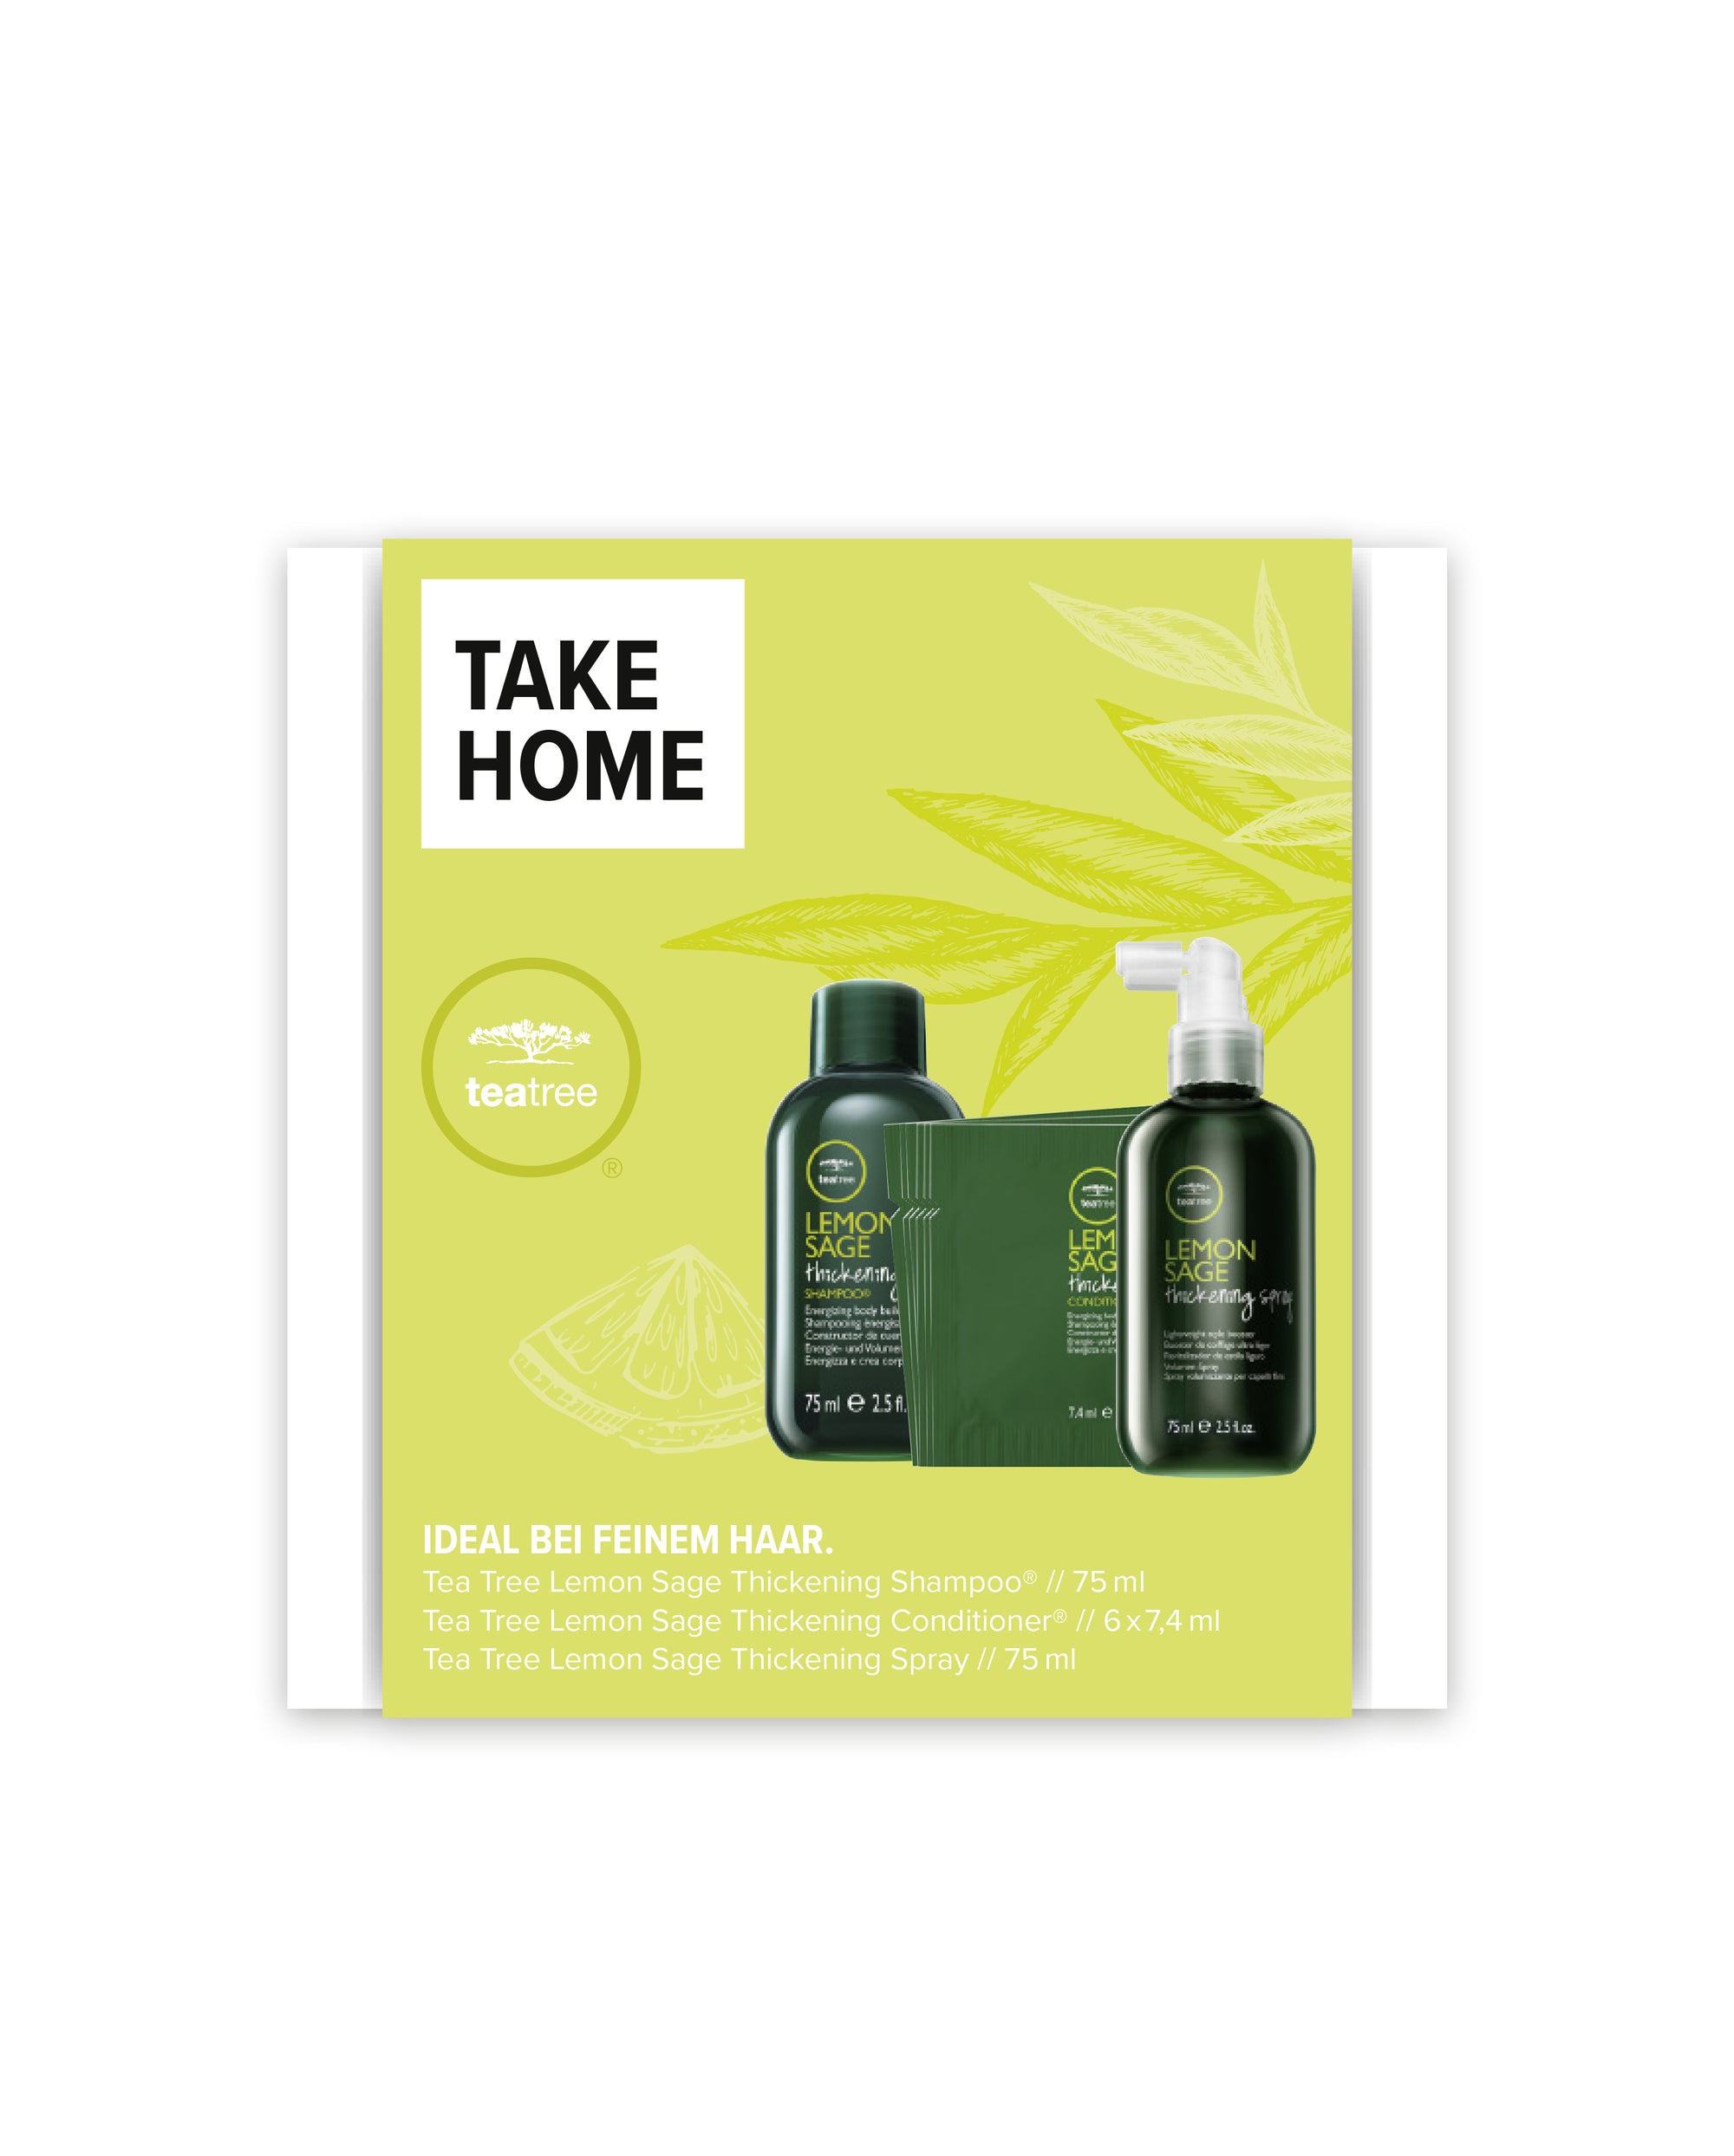 TEA TREE® Take Home Kit LEMON SAGE